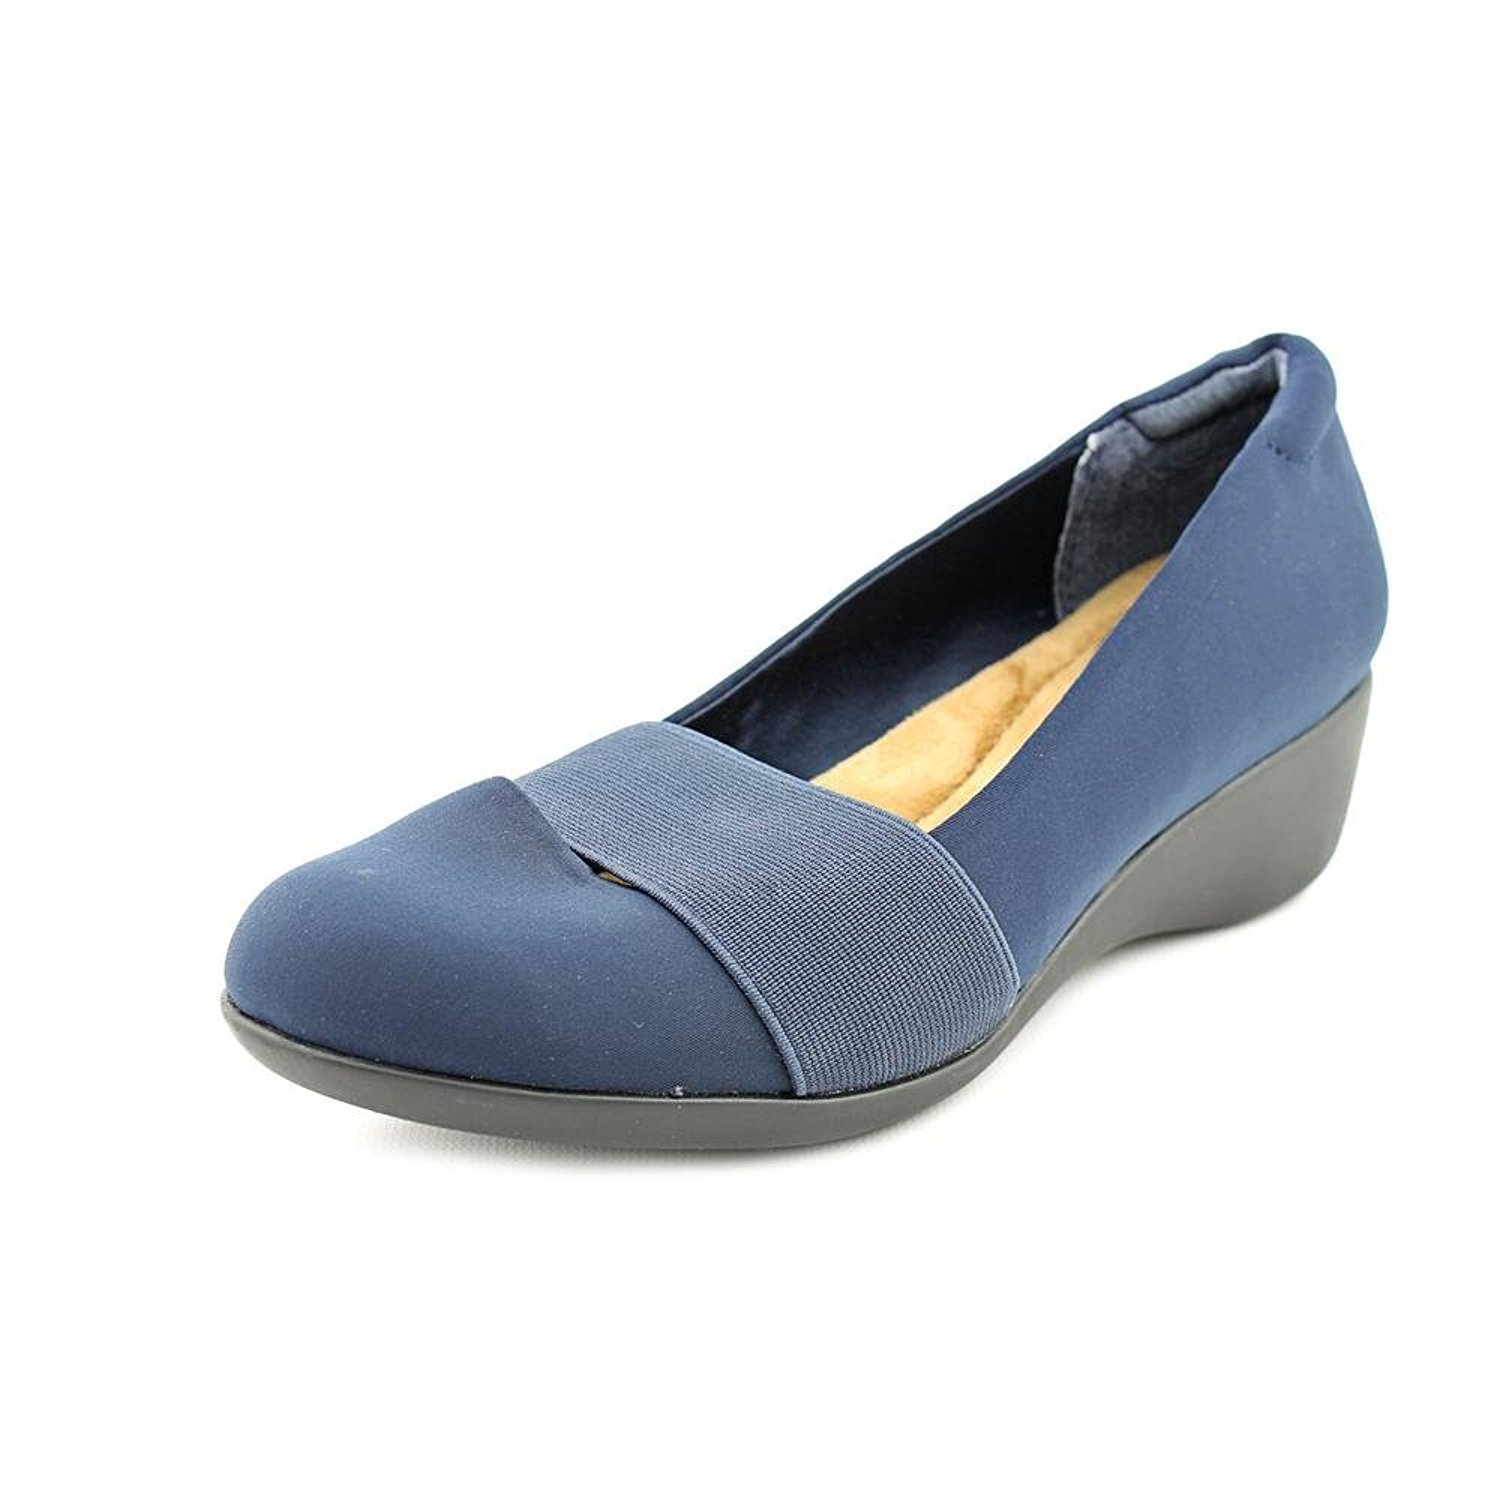 Giani Bernini Grandie Canvas Wedge Heel Navy Size 10.0